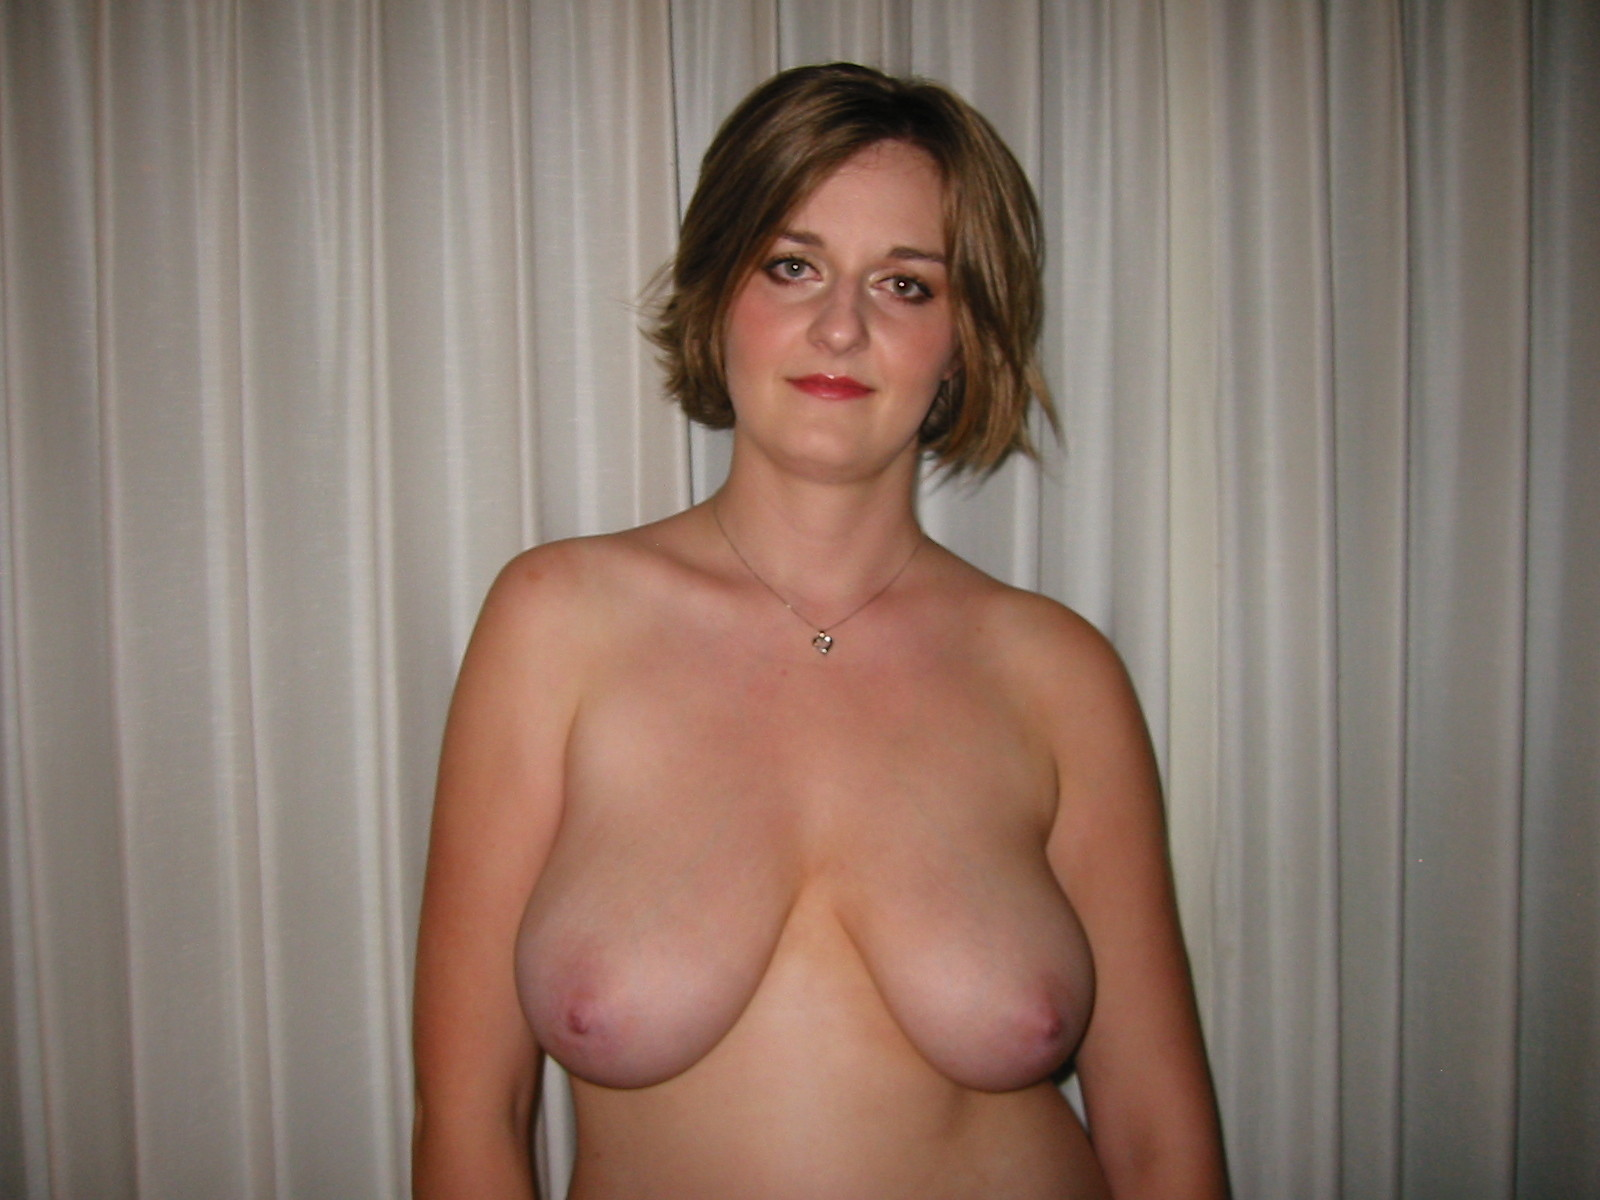 Very pity Giant mature tits breasts boobs amateur